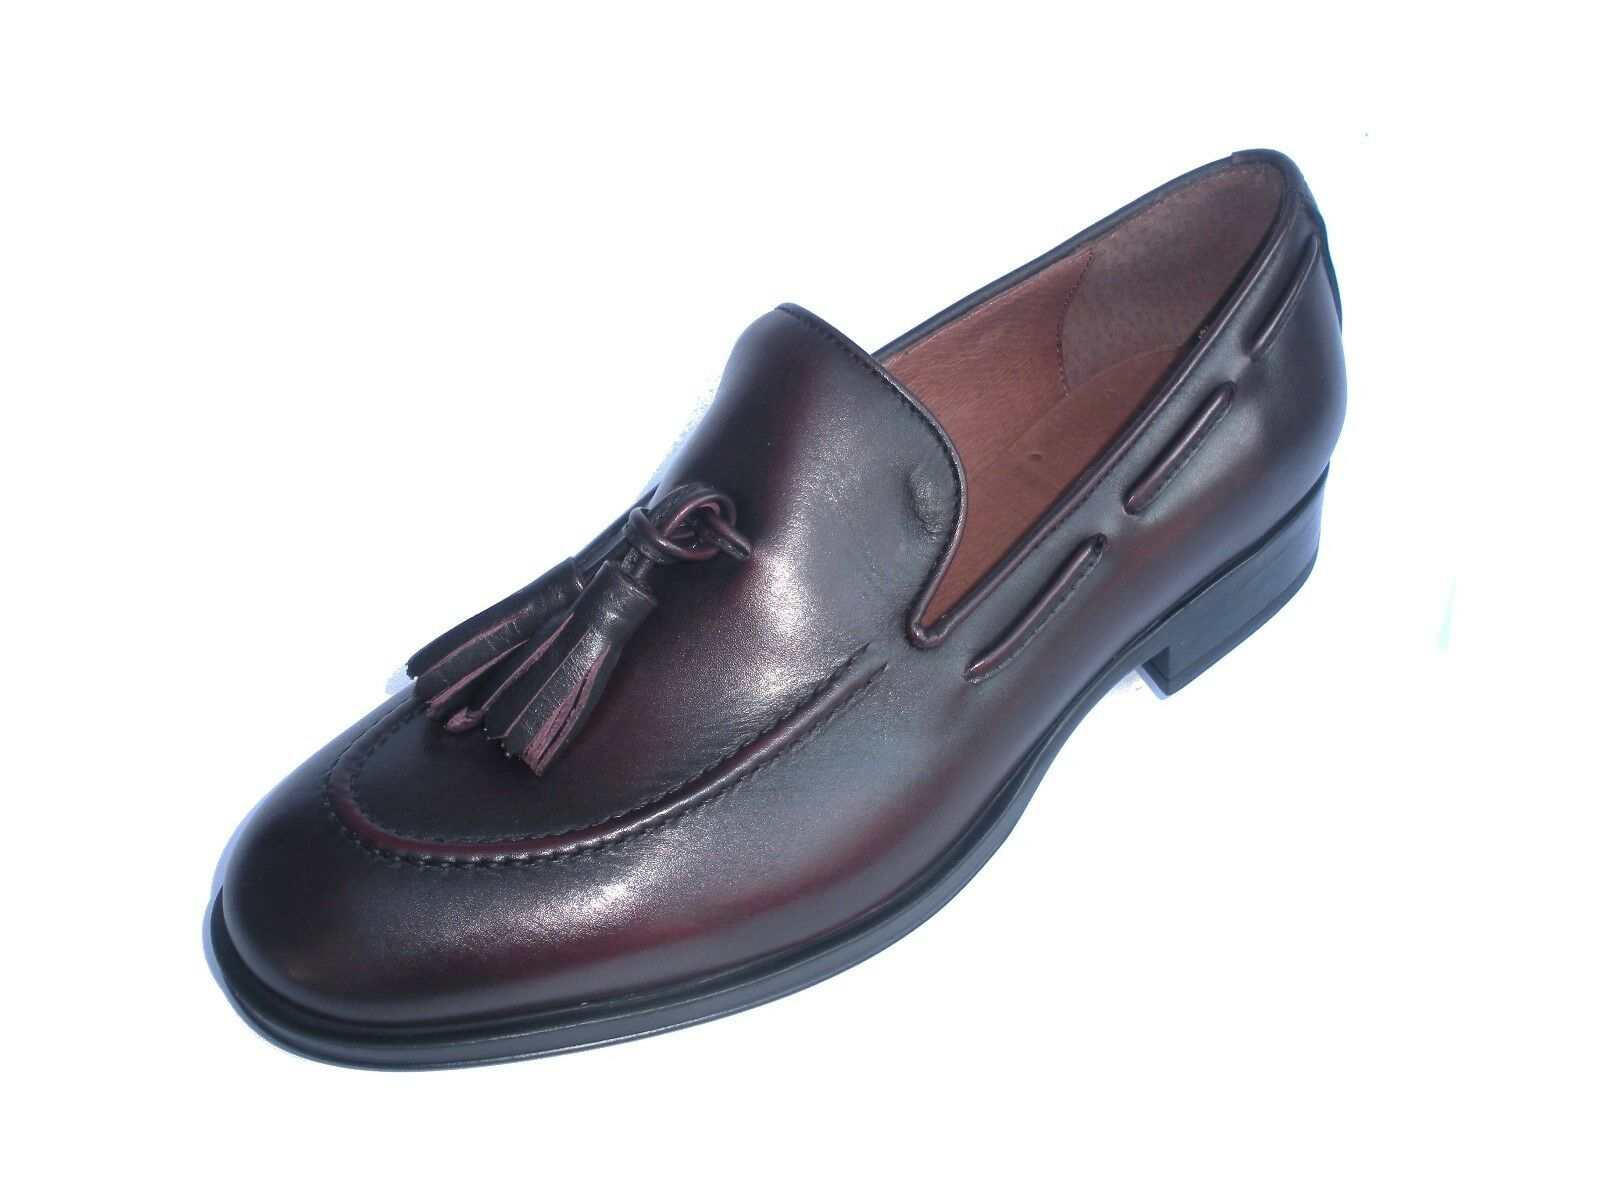 FRAU hommes MOCASSINO PELLE CON NAPPINE 77T6 CouleurE BURGUNDY MADE IN ITALY chaussures